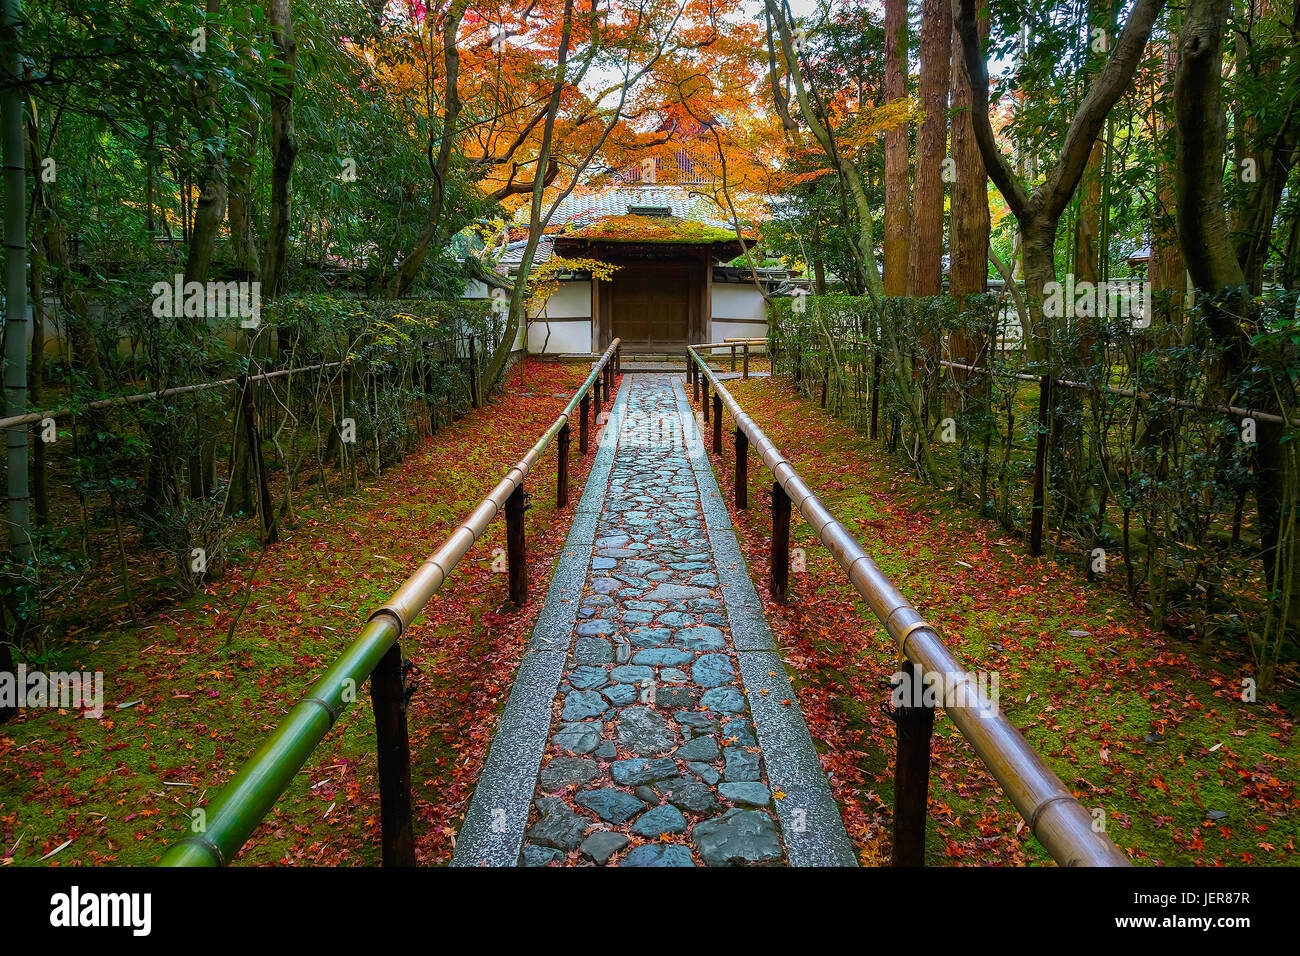 Colorful Autumn at Koto-in Temple in Kyoto - Stock Image